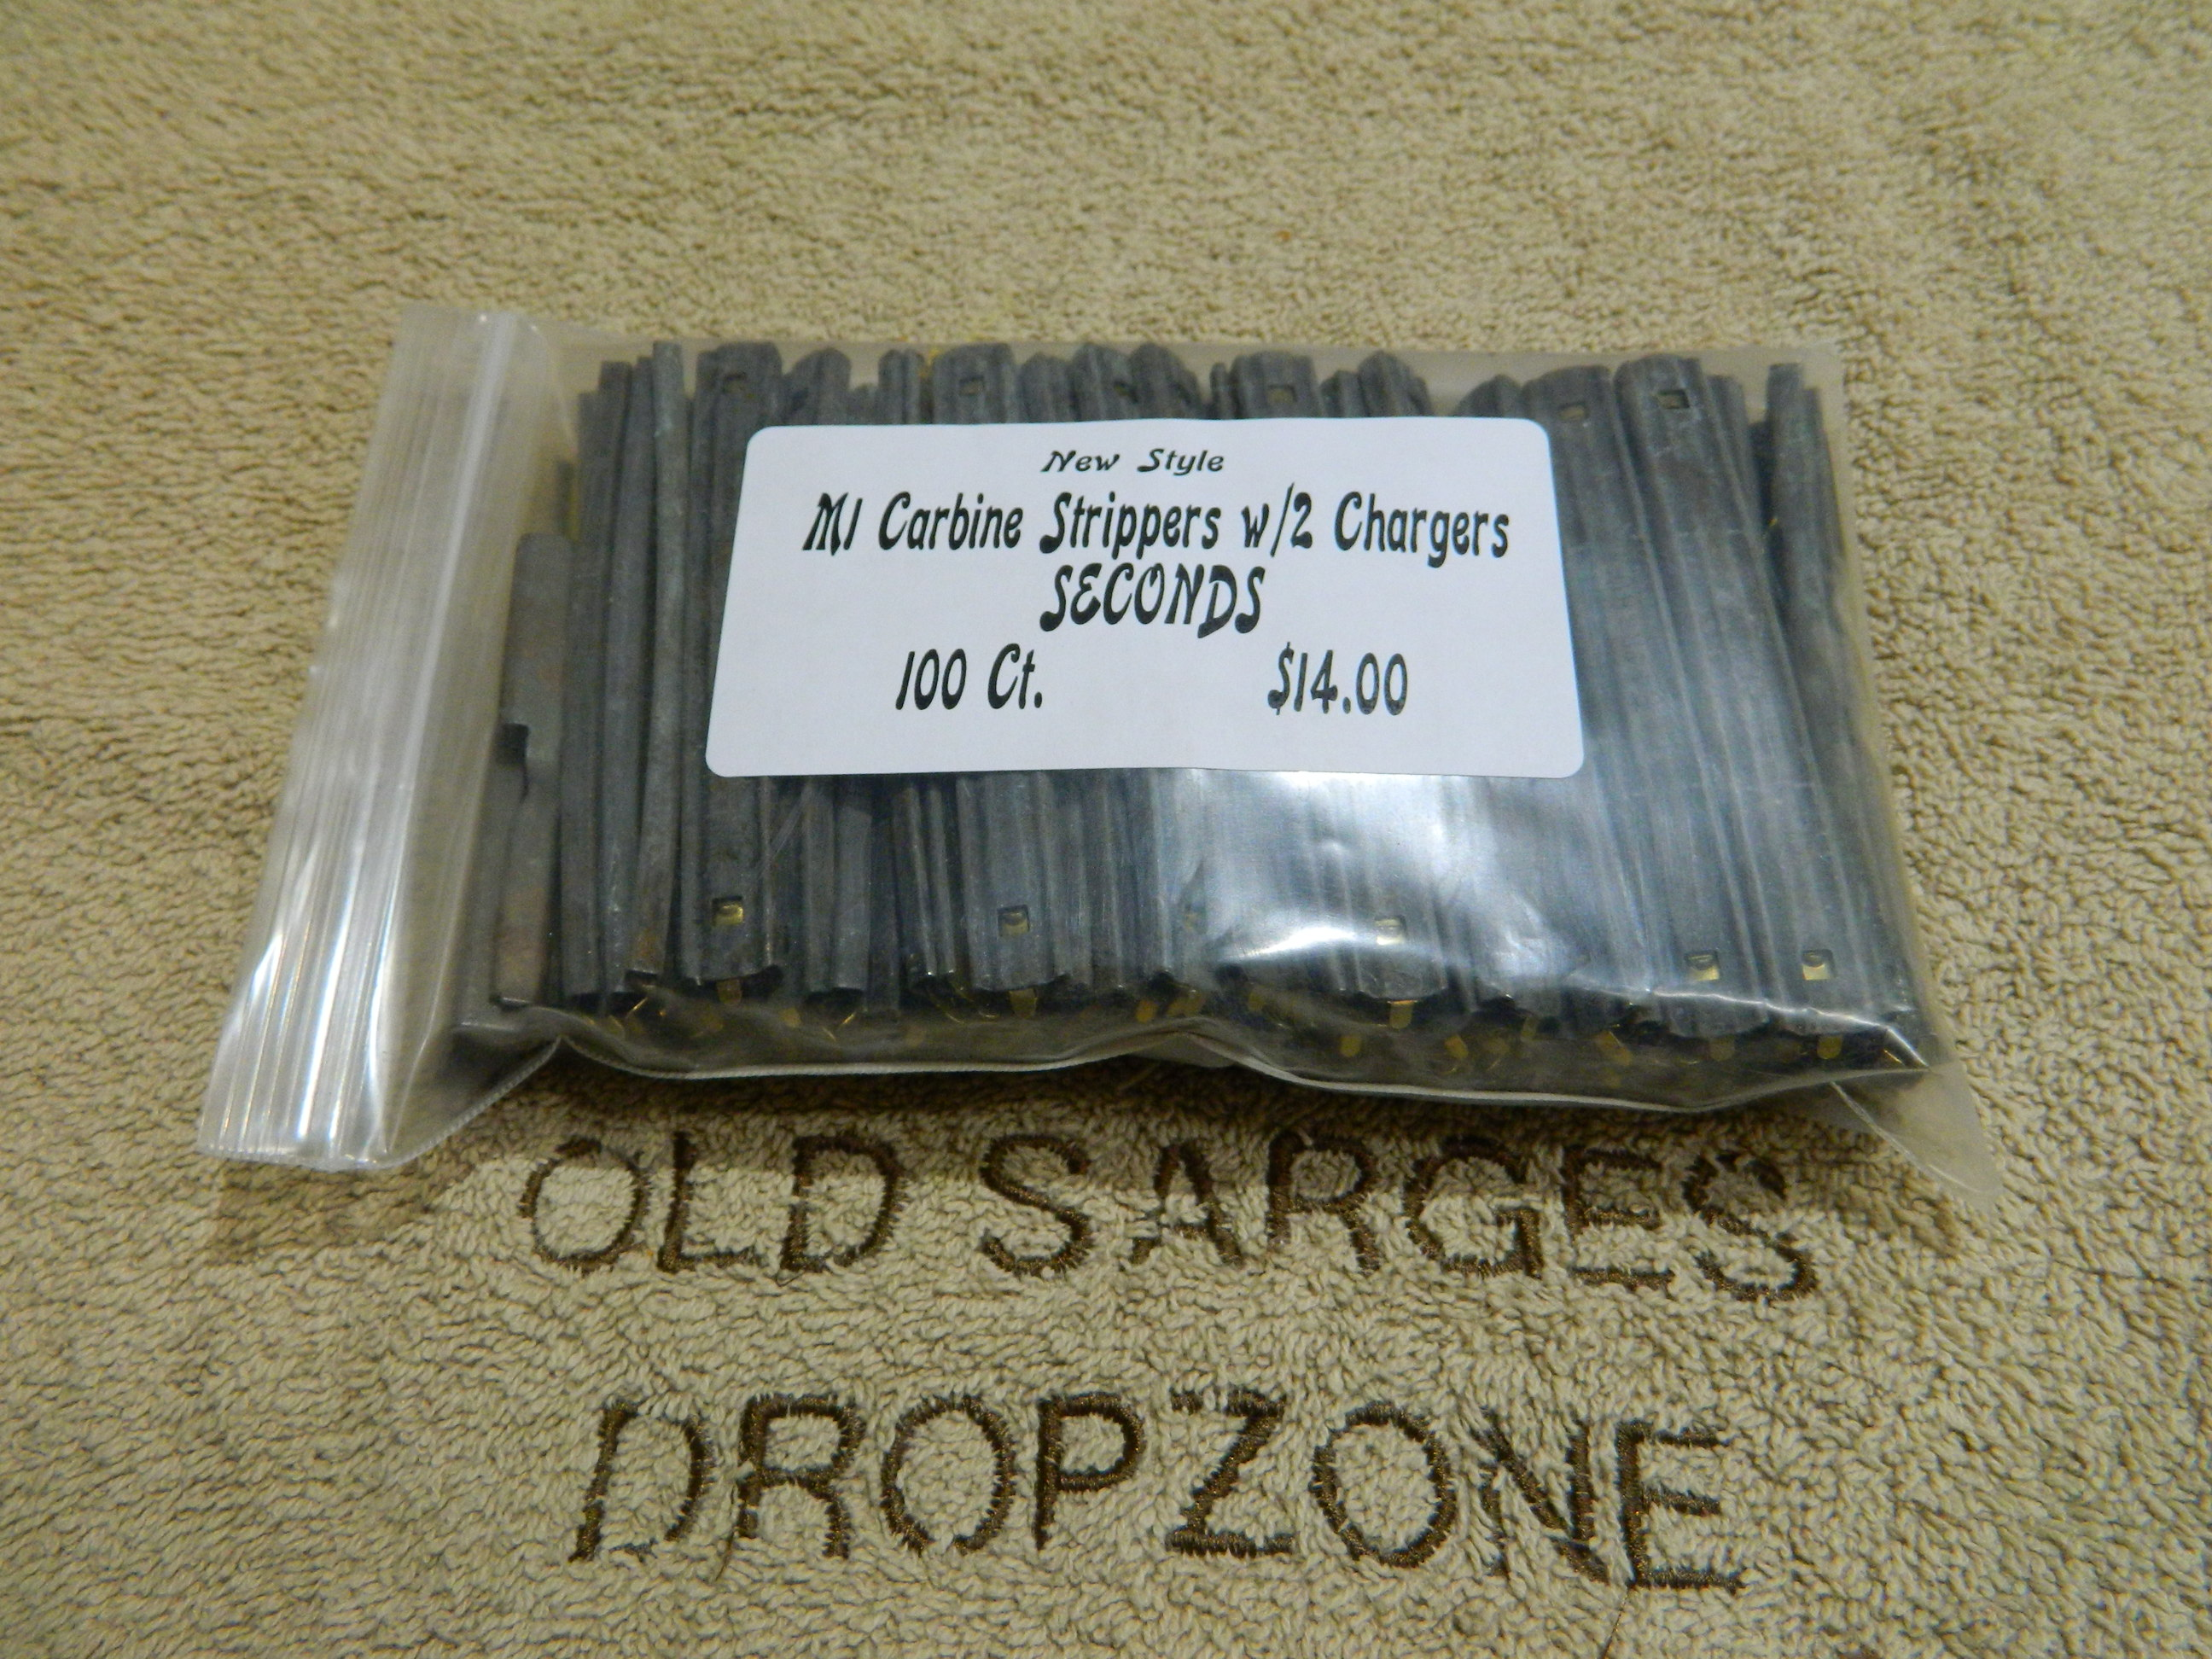 M1 Carbine Strippers- New Style- SECONDS- 100ct.